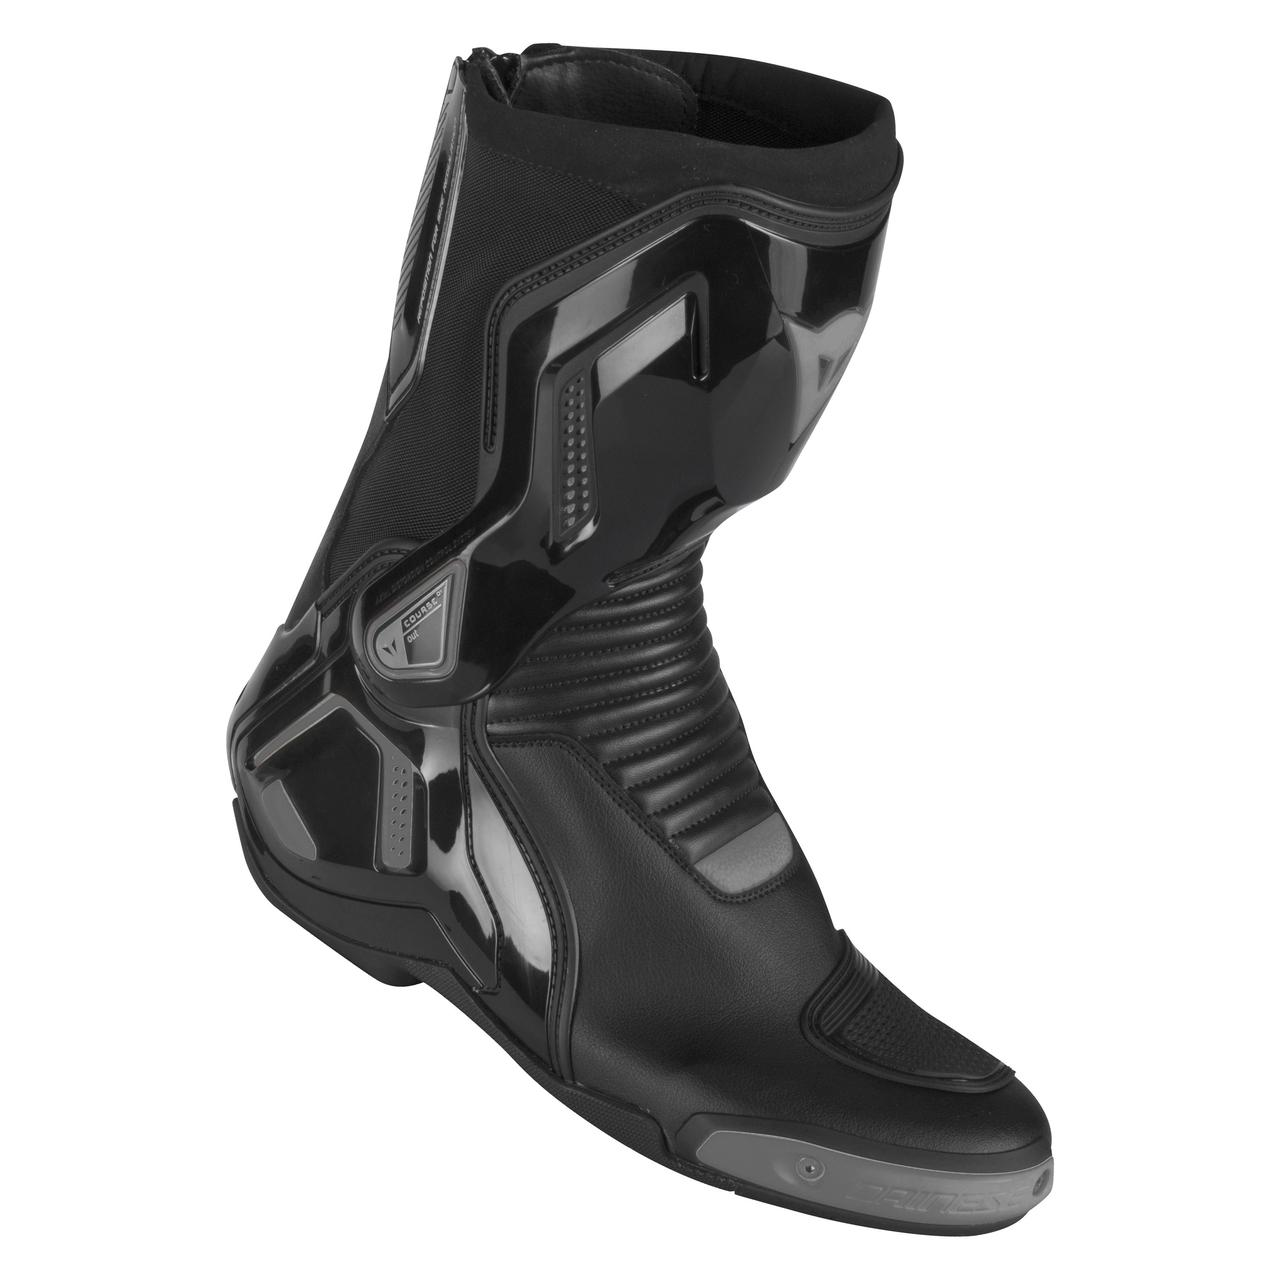 МОТОБОТЫ DAINESE COURSE D1 OUT AIR, 40